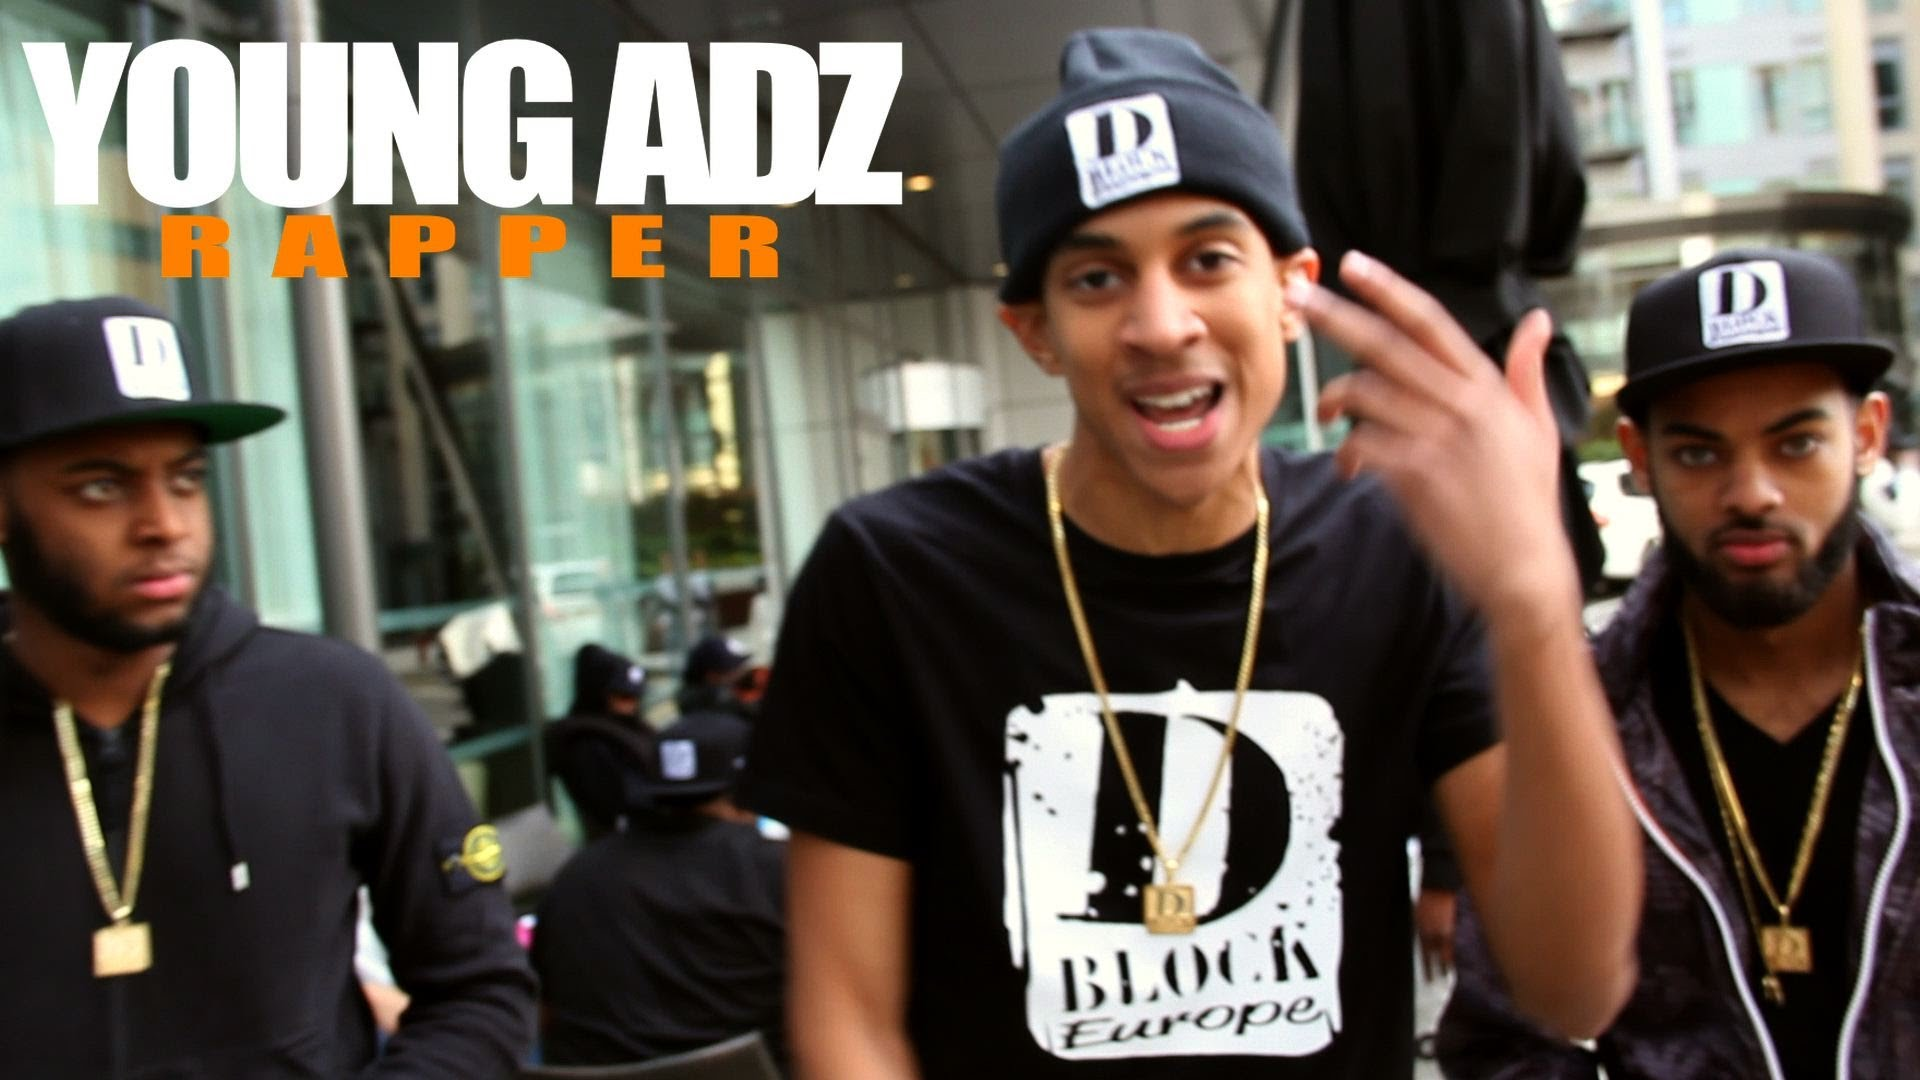 Young Adz Different Music Video Conversations About Her